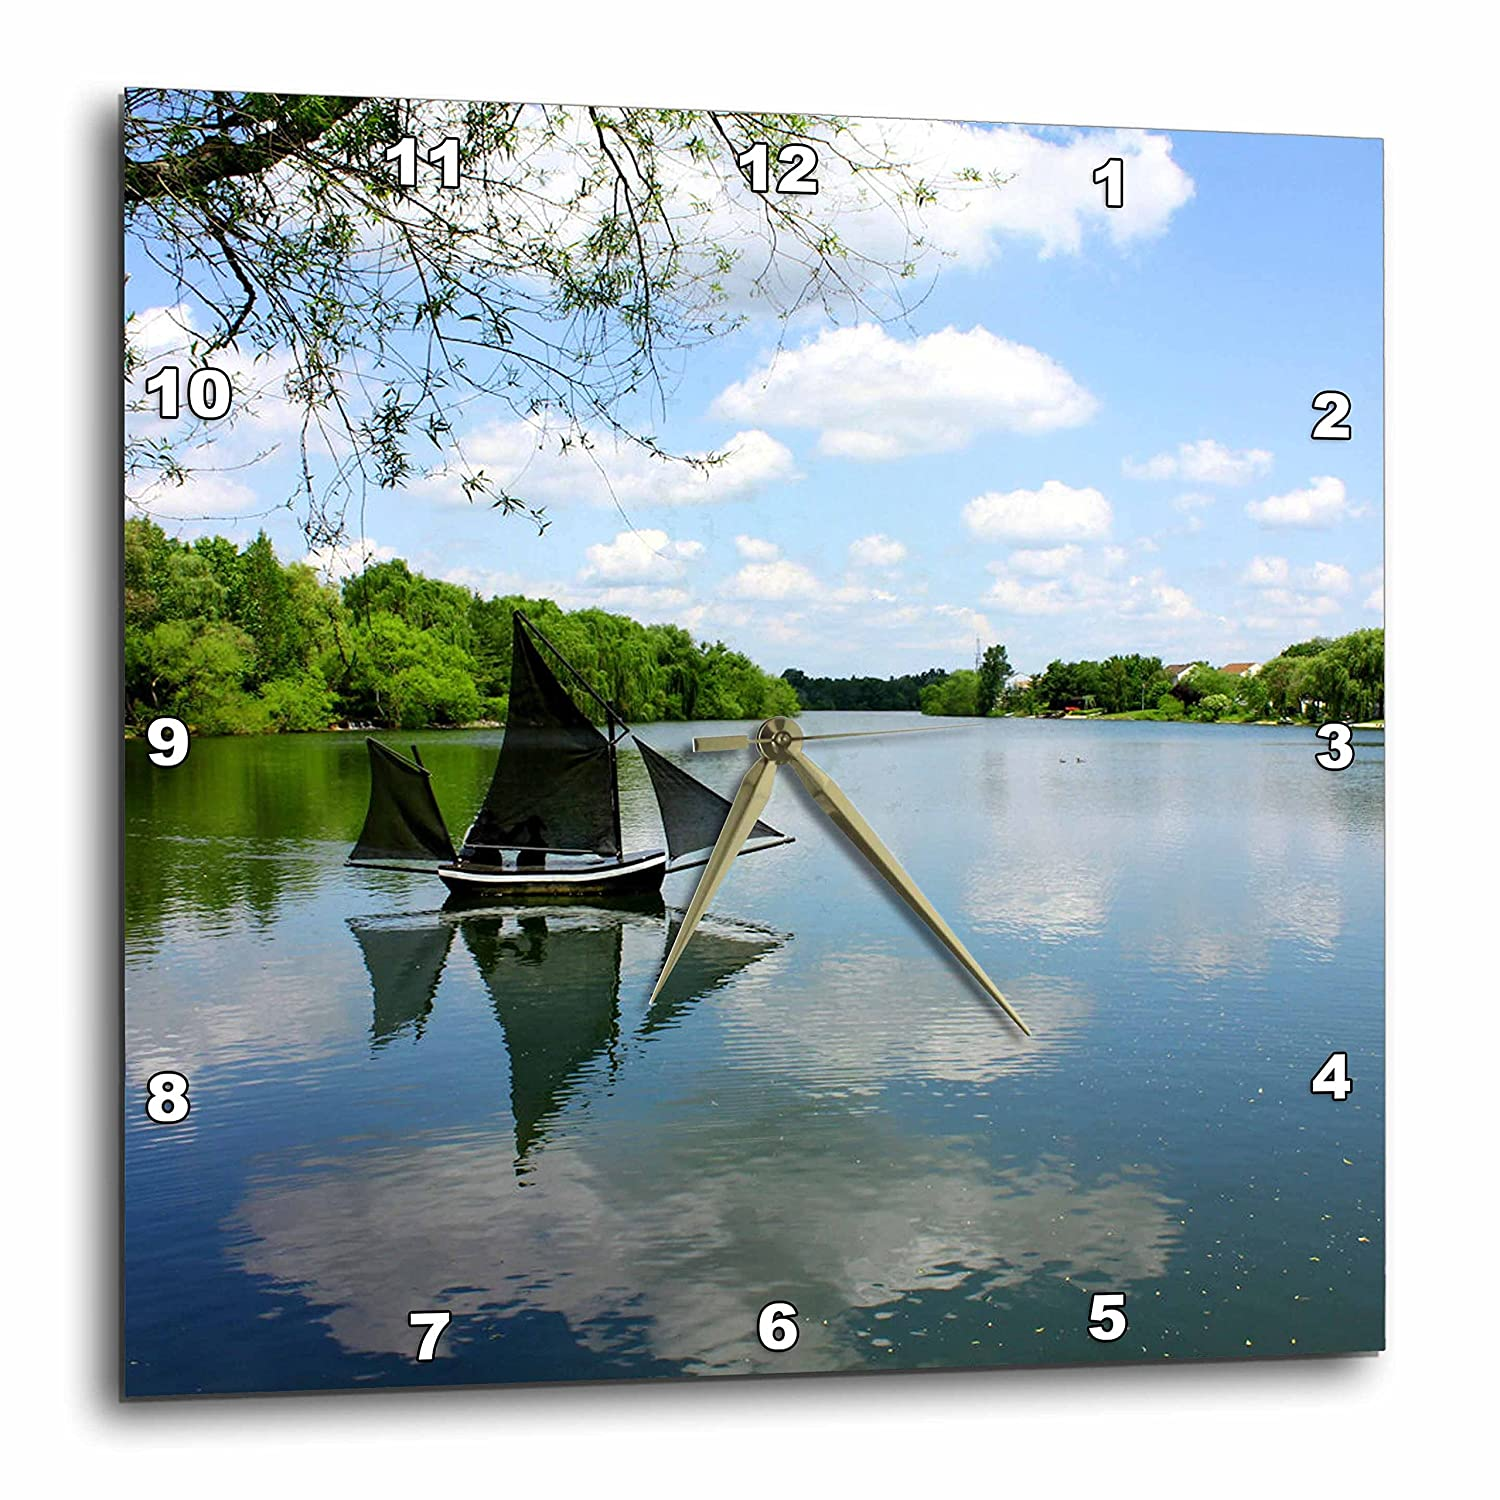 dpp/_38348/_1 Nature Spring and sunny days spent on the water 10x10 Wall Clock 3dRose Lenas Photos